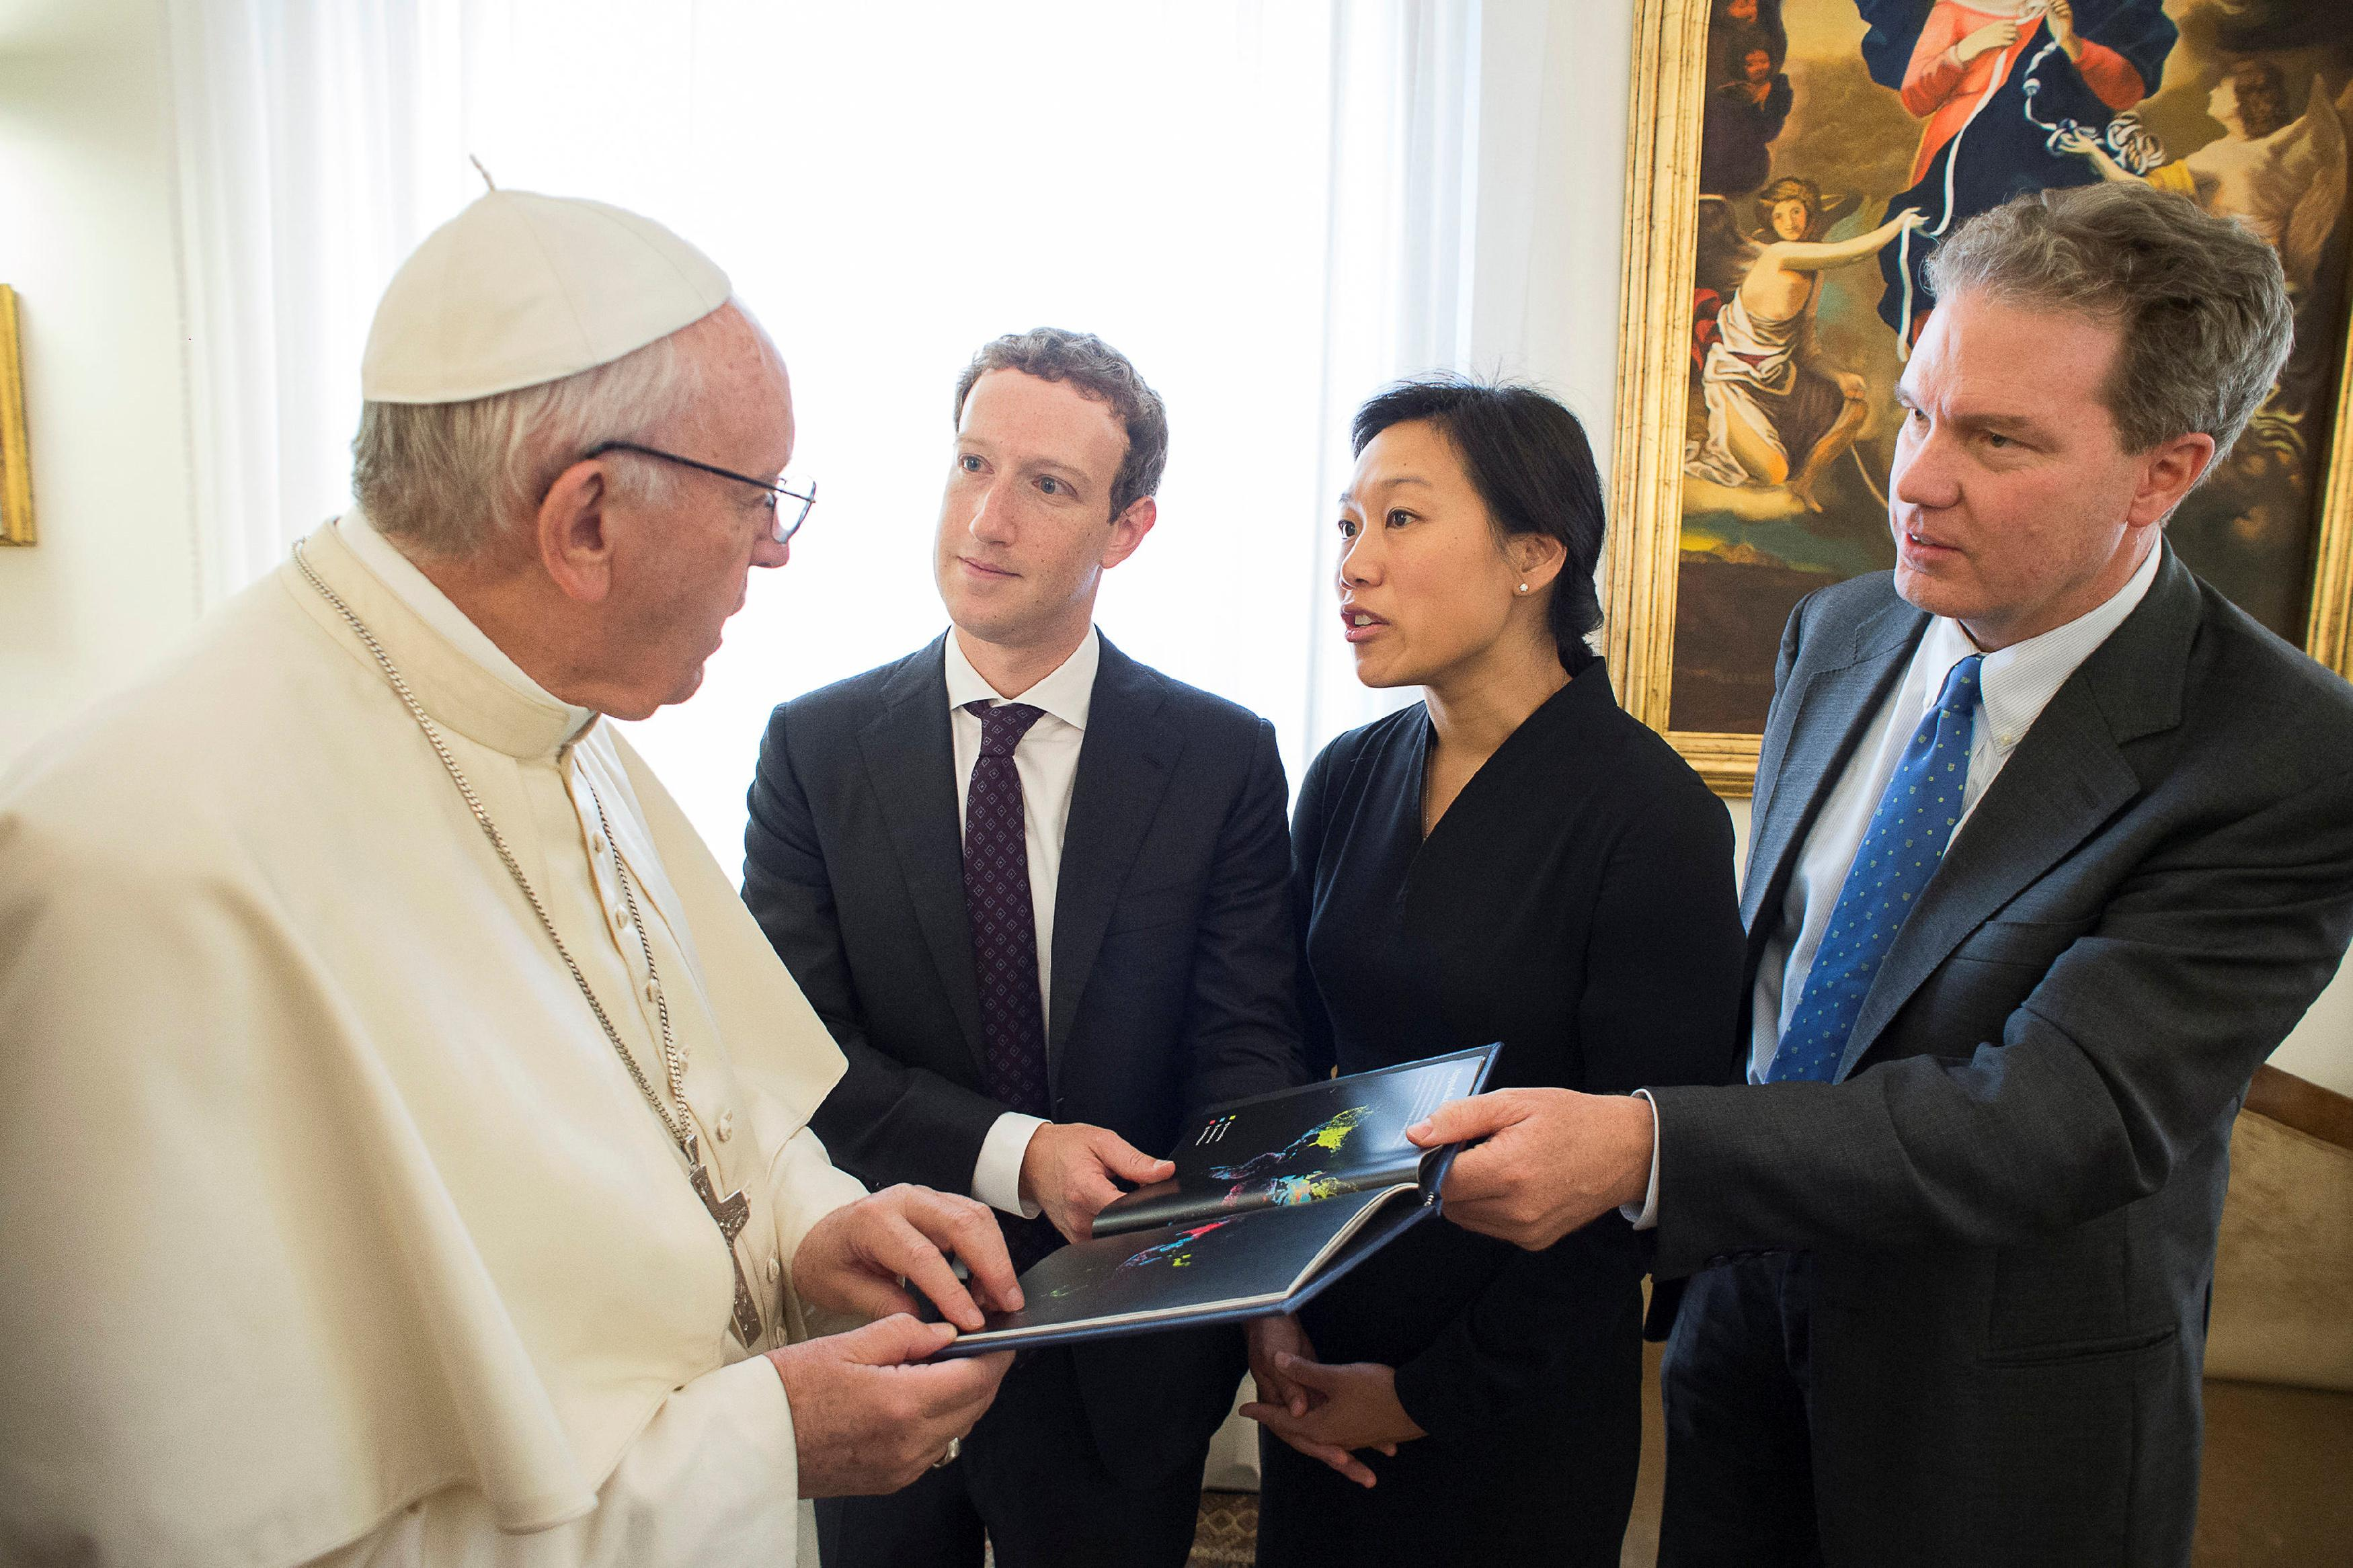 Pope-Francis-Drone-Mark-Zuckerberg-Facebook